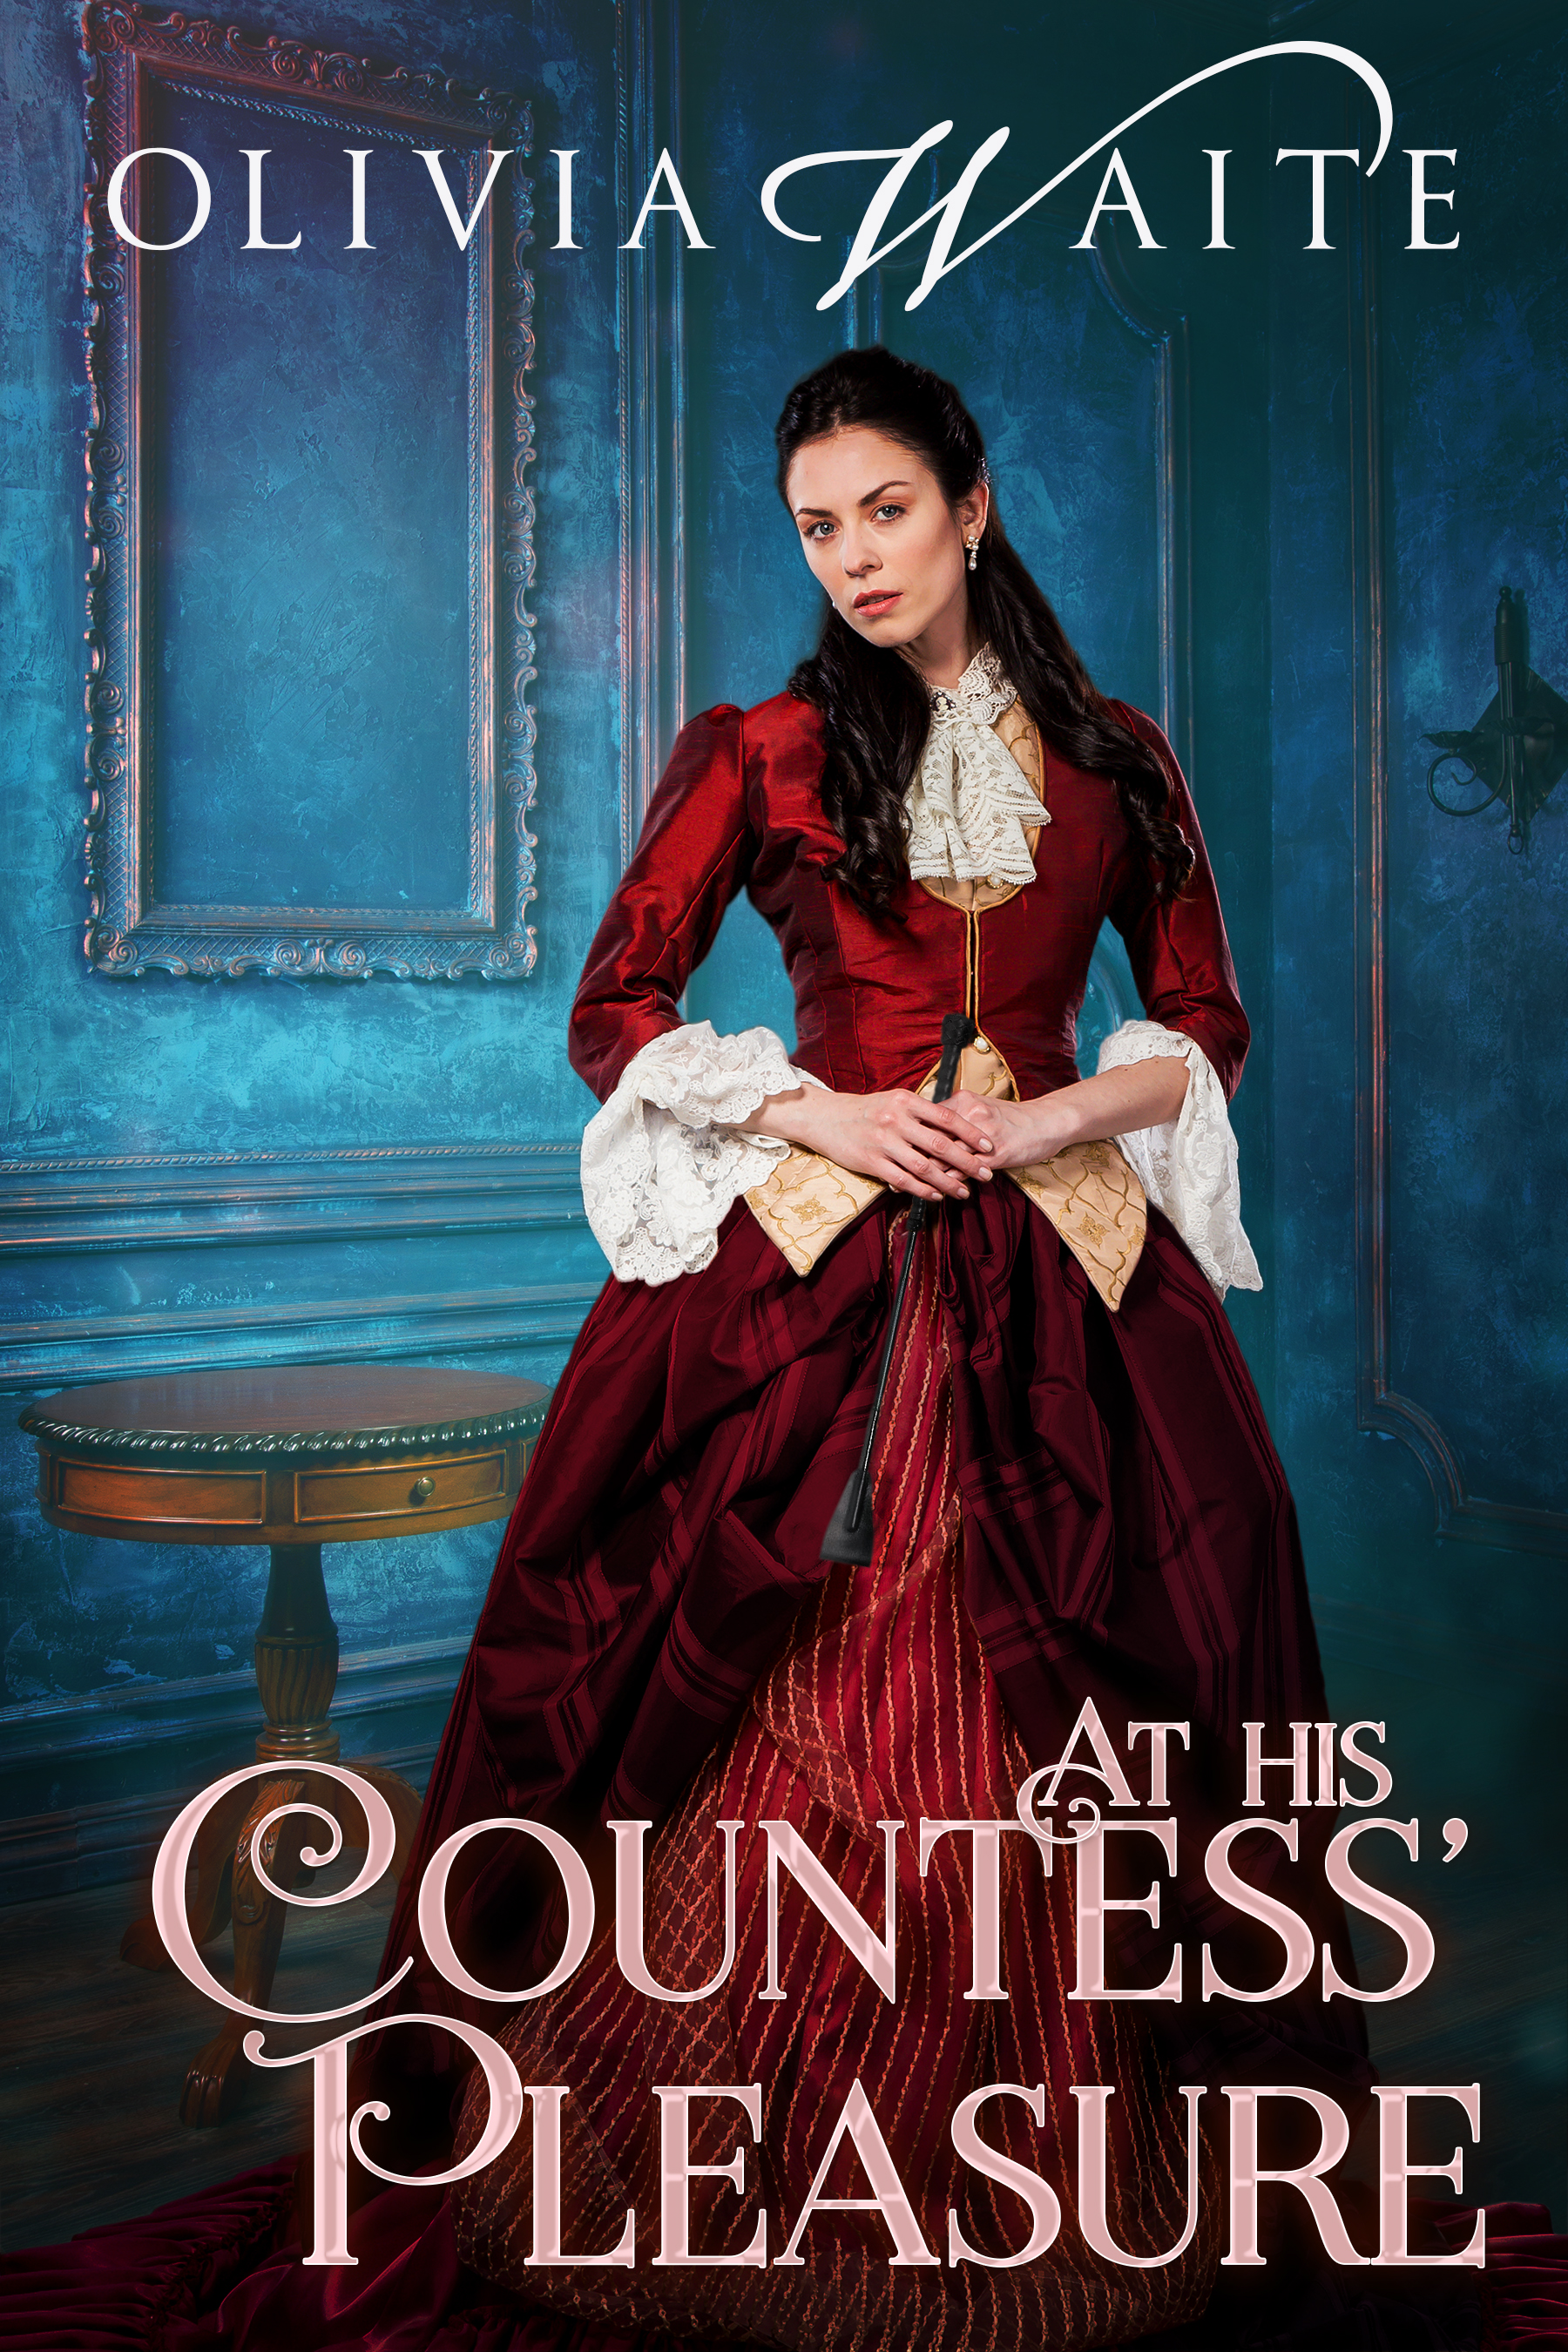 At His Countess' Pleasure - Anne Pym and Simon Rushmore are still reeling from the scandalous marriage of Anne's cousin to Simon's brother. But Simon's position as Earl of Underwood has shielded him from the harshest criticisms. In a bid to repair Anne's family's shattered reputation, Simon proposes a most practical solution—he will make her his countess and they will set about the business of producing an heir. But marriage is a beginning rather than an ending, and scandal has a long life. Old hurts and new family crises threaten their burgeoning passion, even as Simon finds himself more and more eager to submit to his strong-willed wife's every carnal command. When Anne's bitterest secret emerges, destroying their hopes for the future, Simon must learn whether he can offer his wife enough to bring Anne a lifetime of happiness—and just how completely he is willing to submit.